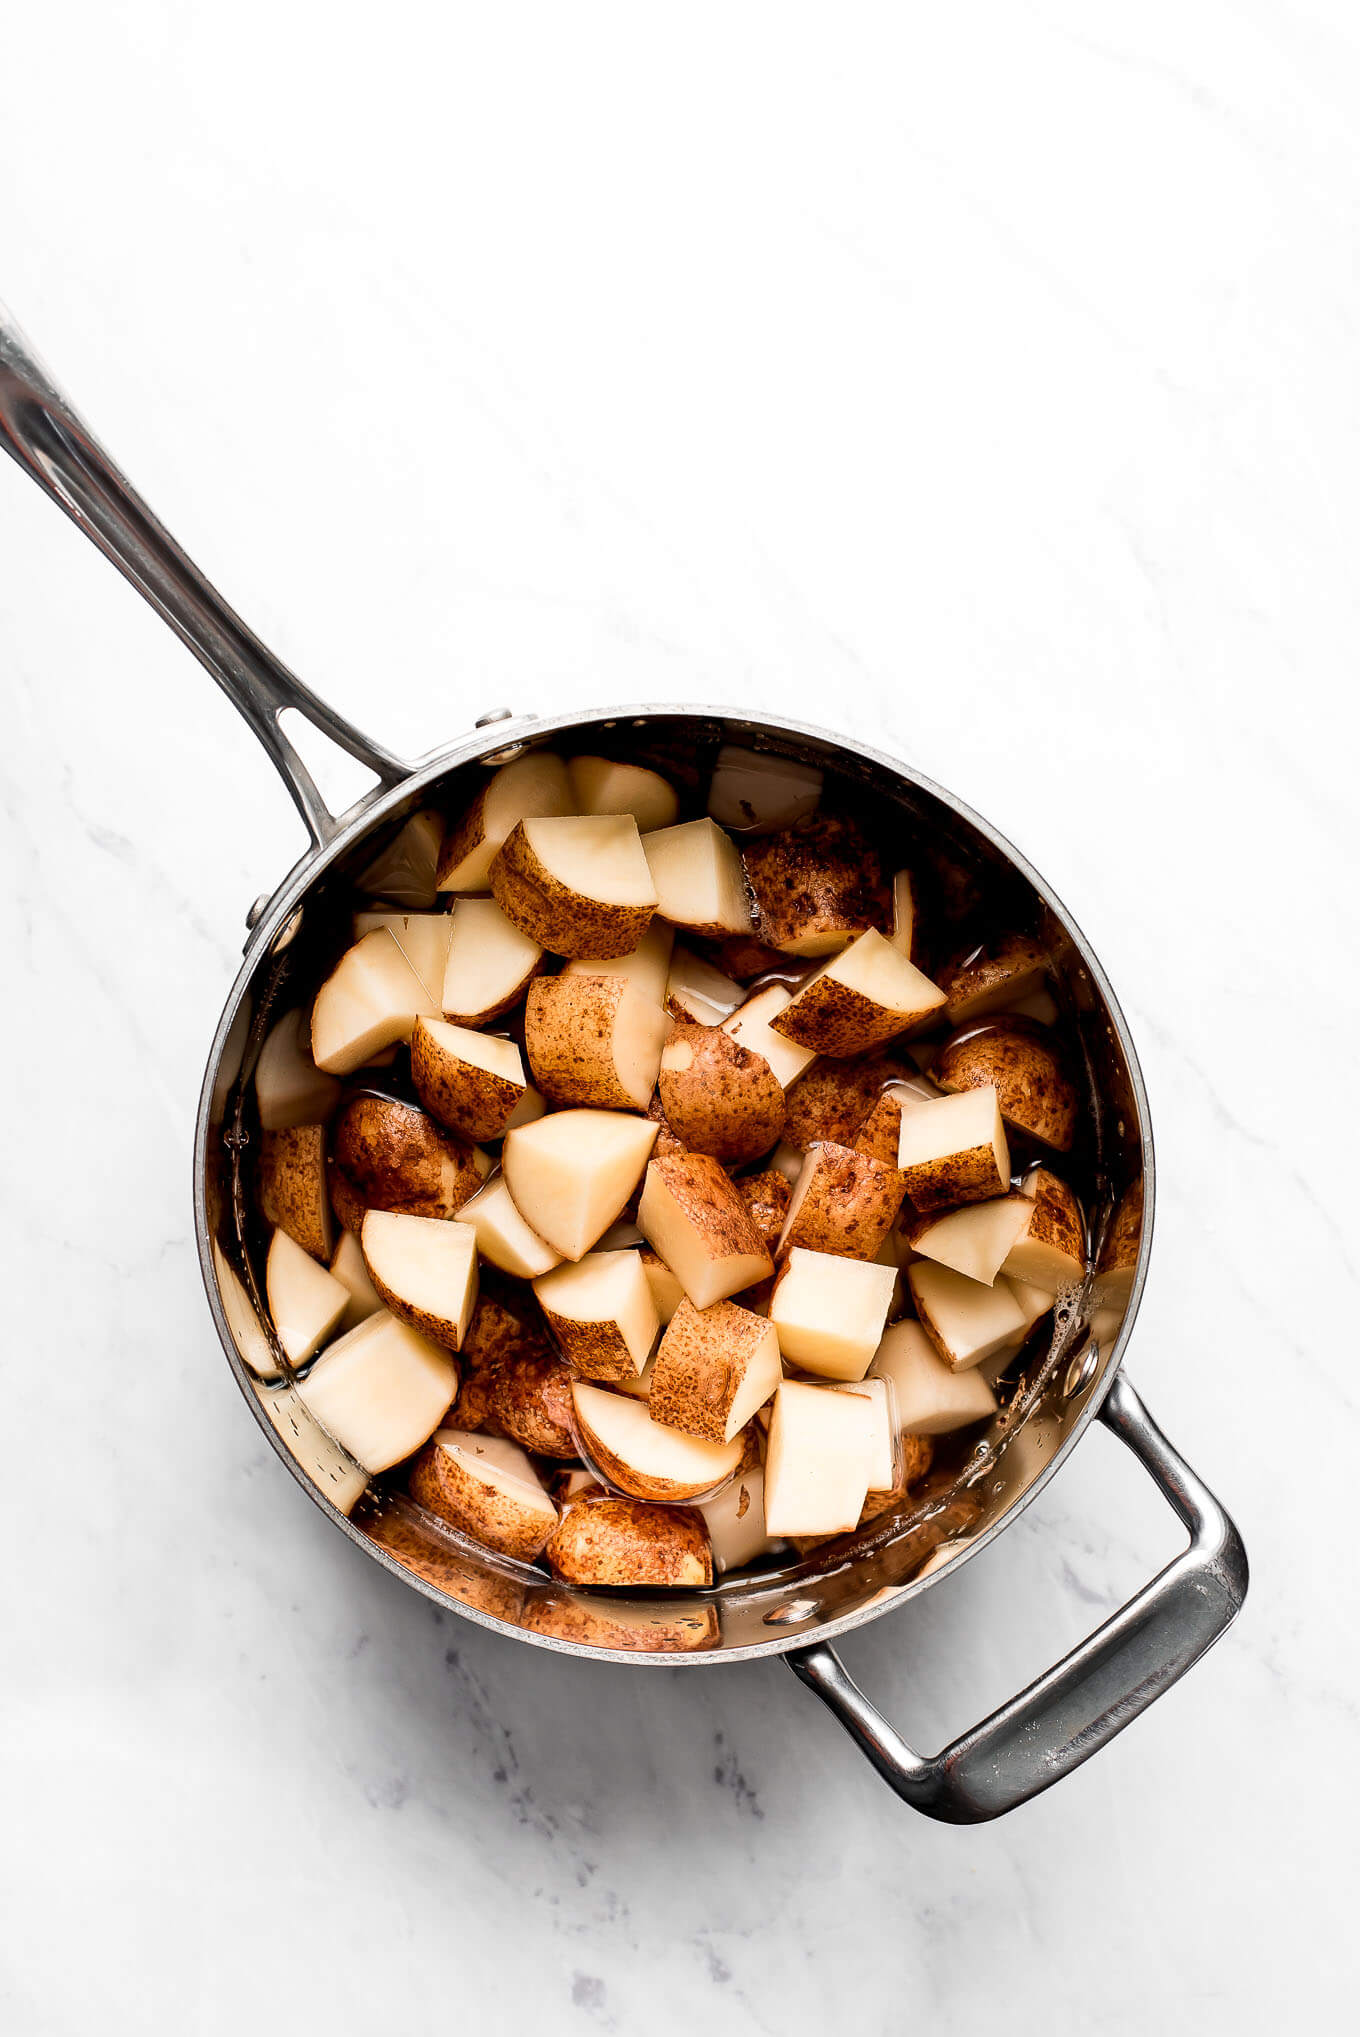 Cut up russet potatoes with the skin on in a pot of water.